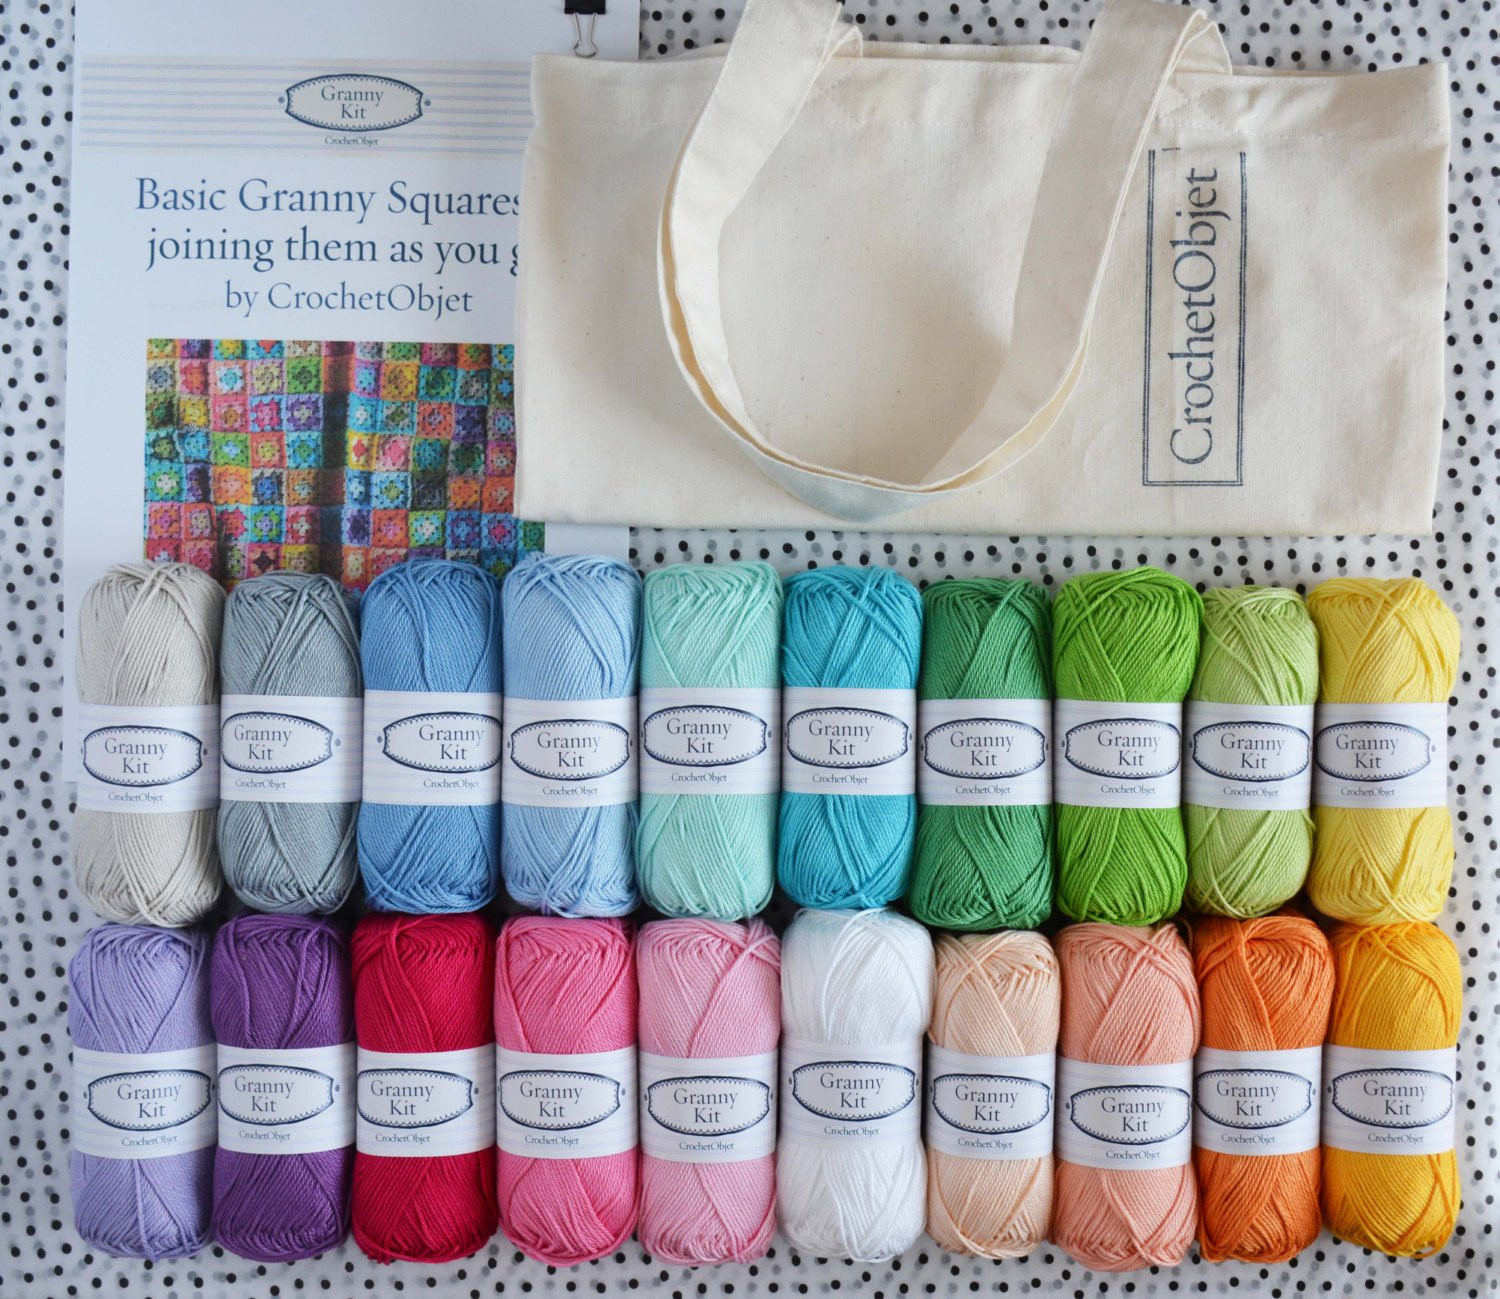 Best Of Crochet Beginners Kit Granny Square Diy Pattern with 20 Crochet Supplies for Beginners Of Marvelous 49 Ideas Crochet Supplies for Beginners